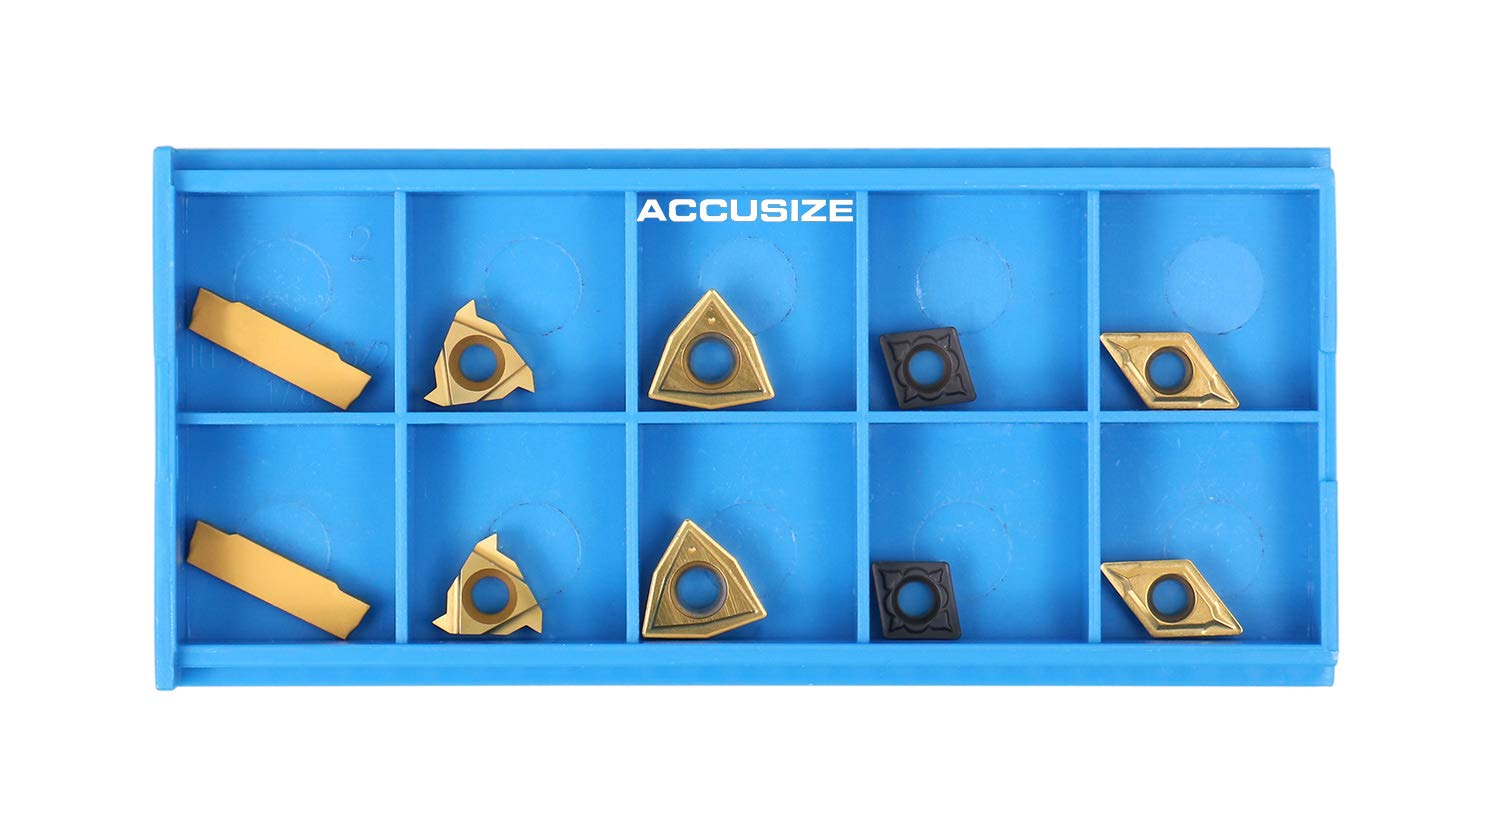 Total 10 Pieces Accusize Industrial Tools 2 Pc of Each Kind of Carbide Inserts for 2387-2004 CVD Coated and Tin Coated 2387-2004inserts